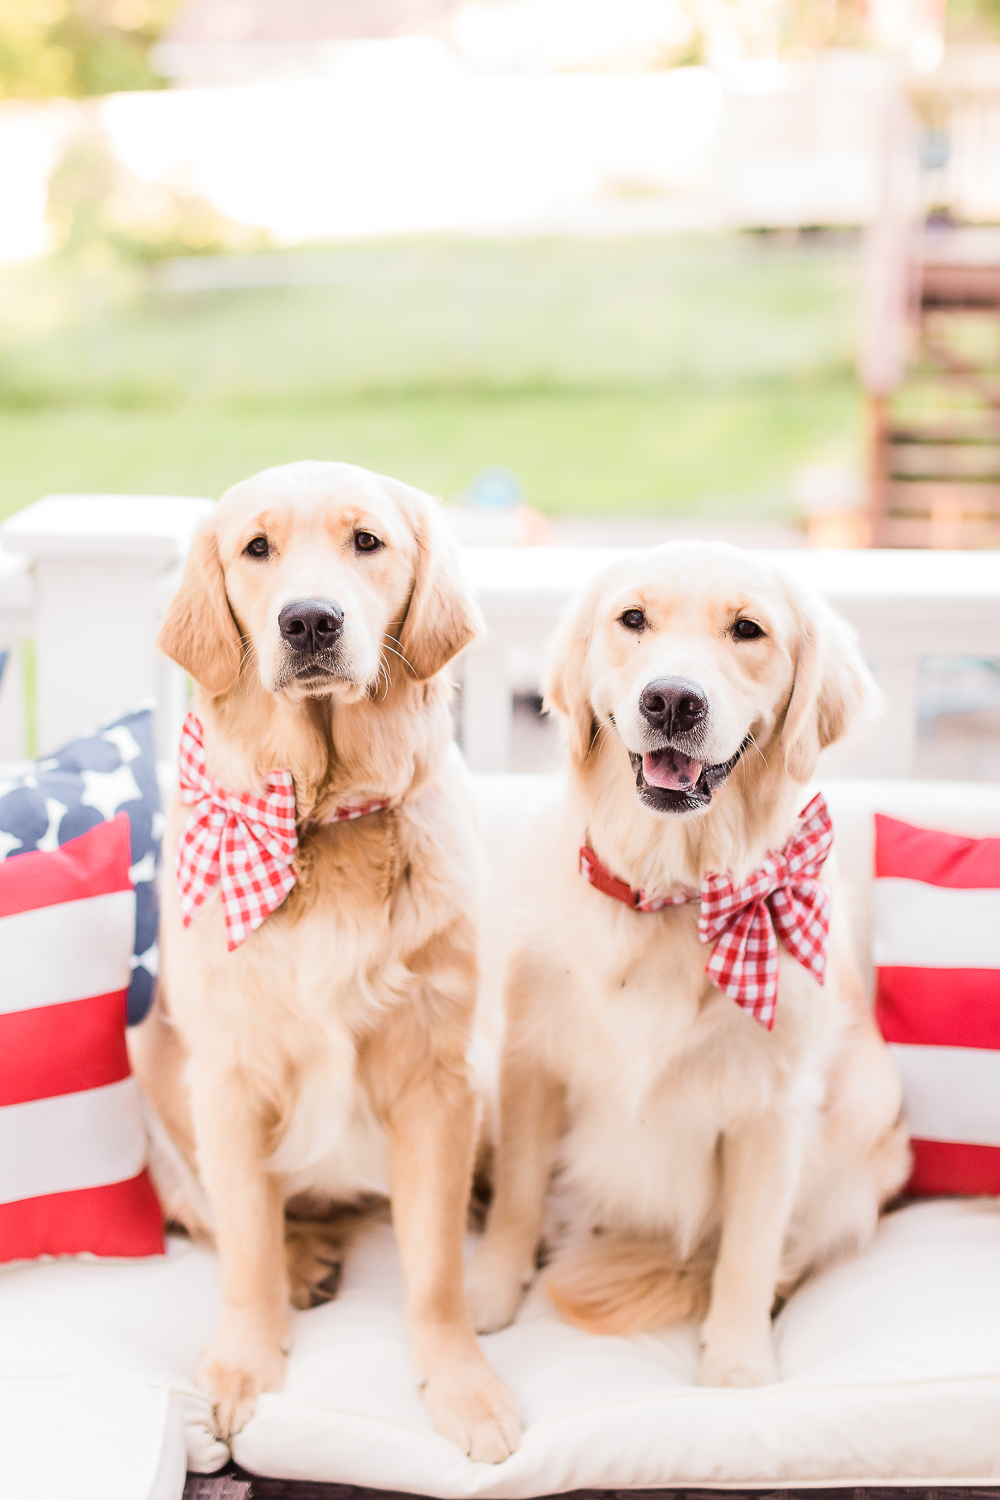 4th of July golden retrievers, 4th of July puppies, red gingham dog bows and collars, Currently Obsessed: Cute Female Dog Bows for Large Breeds by popular southern lifestyle blogger and golden retriever dog mom Stephanie Ziajka from Diary of a Debutante, how to make dog bows stay in, designer dog bows, female dog bows, 4th of July dog bows, cute dog bows for large breeds